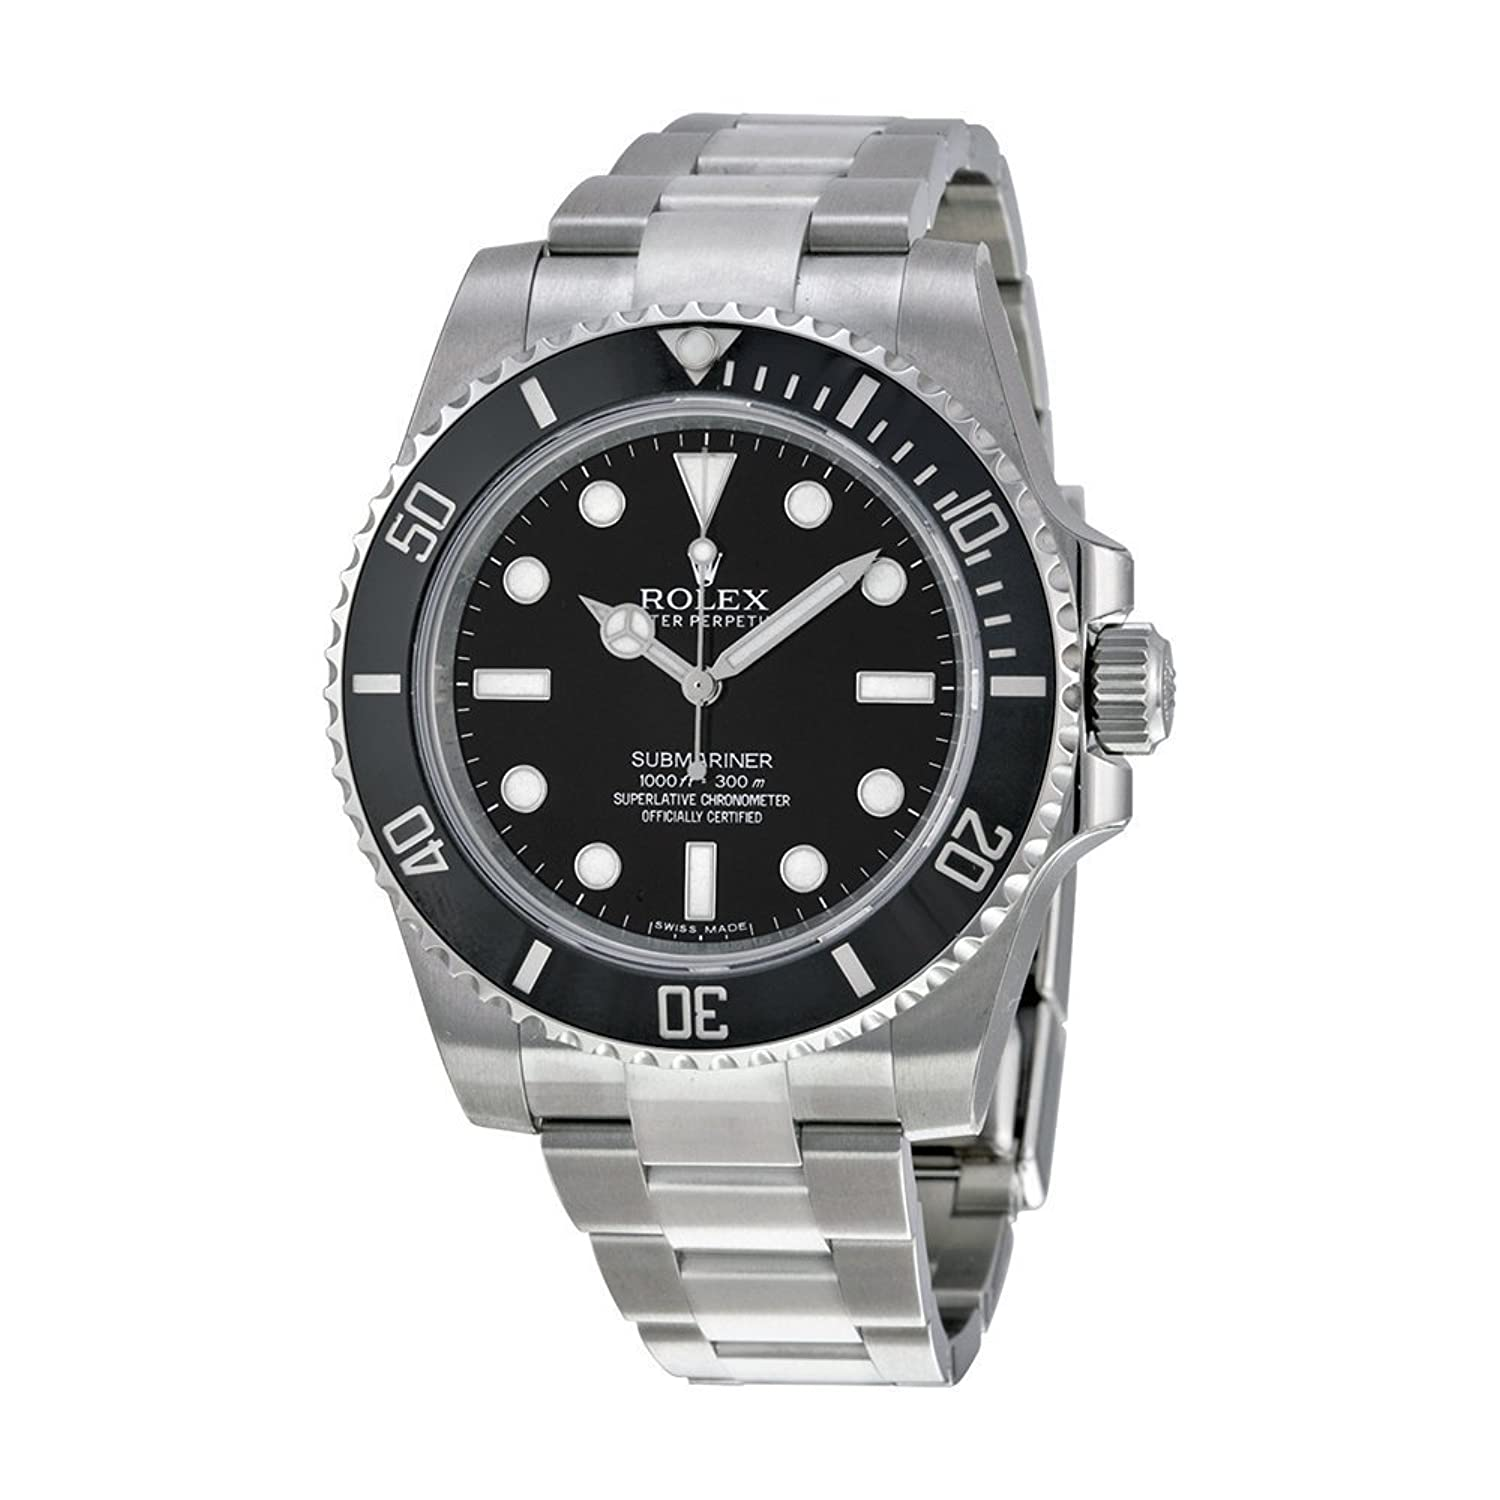 amazon com rolex submariner black dial stainless steel automatic amazon com rolex submariner black dial stainless steel automatic mens watch 114060 rolex watches